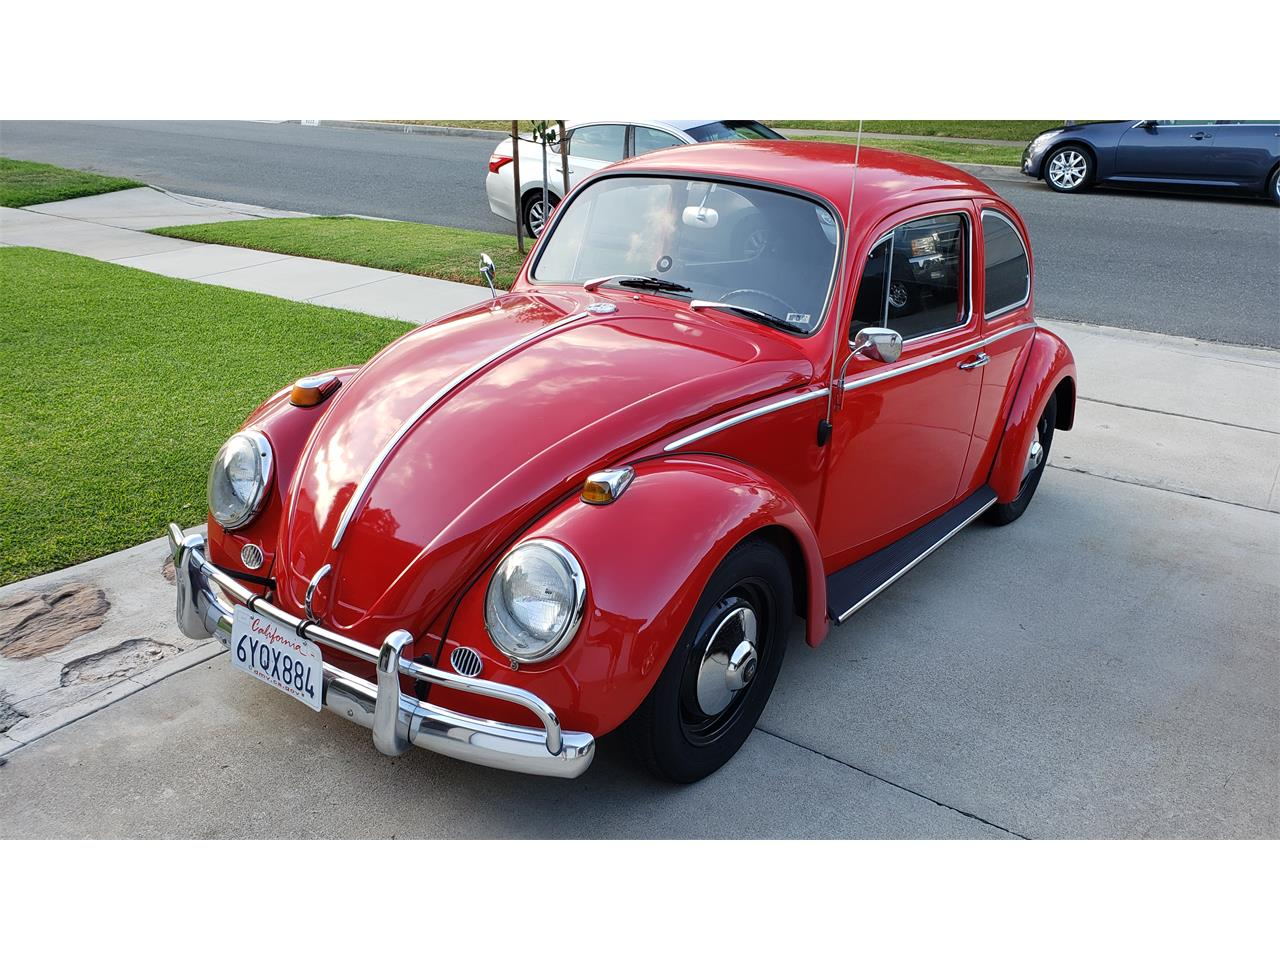 Large Picture of Classic '65 Volkswagen Beetle Offered by a Private Seller - QXYY